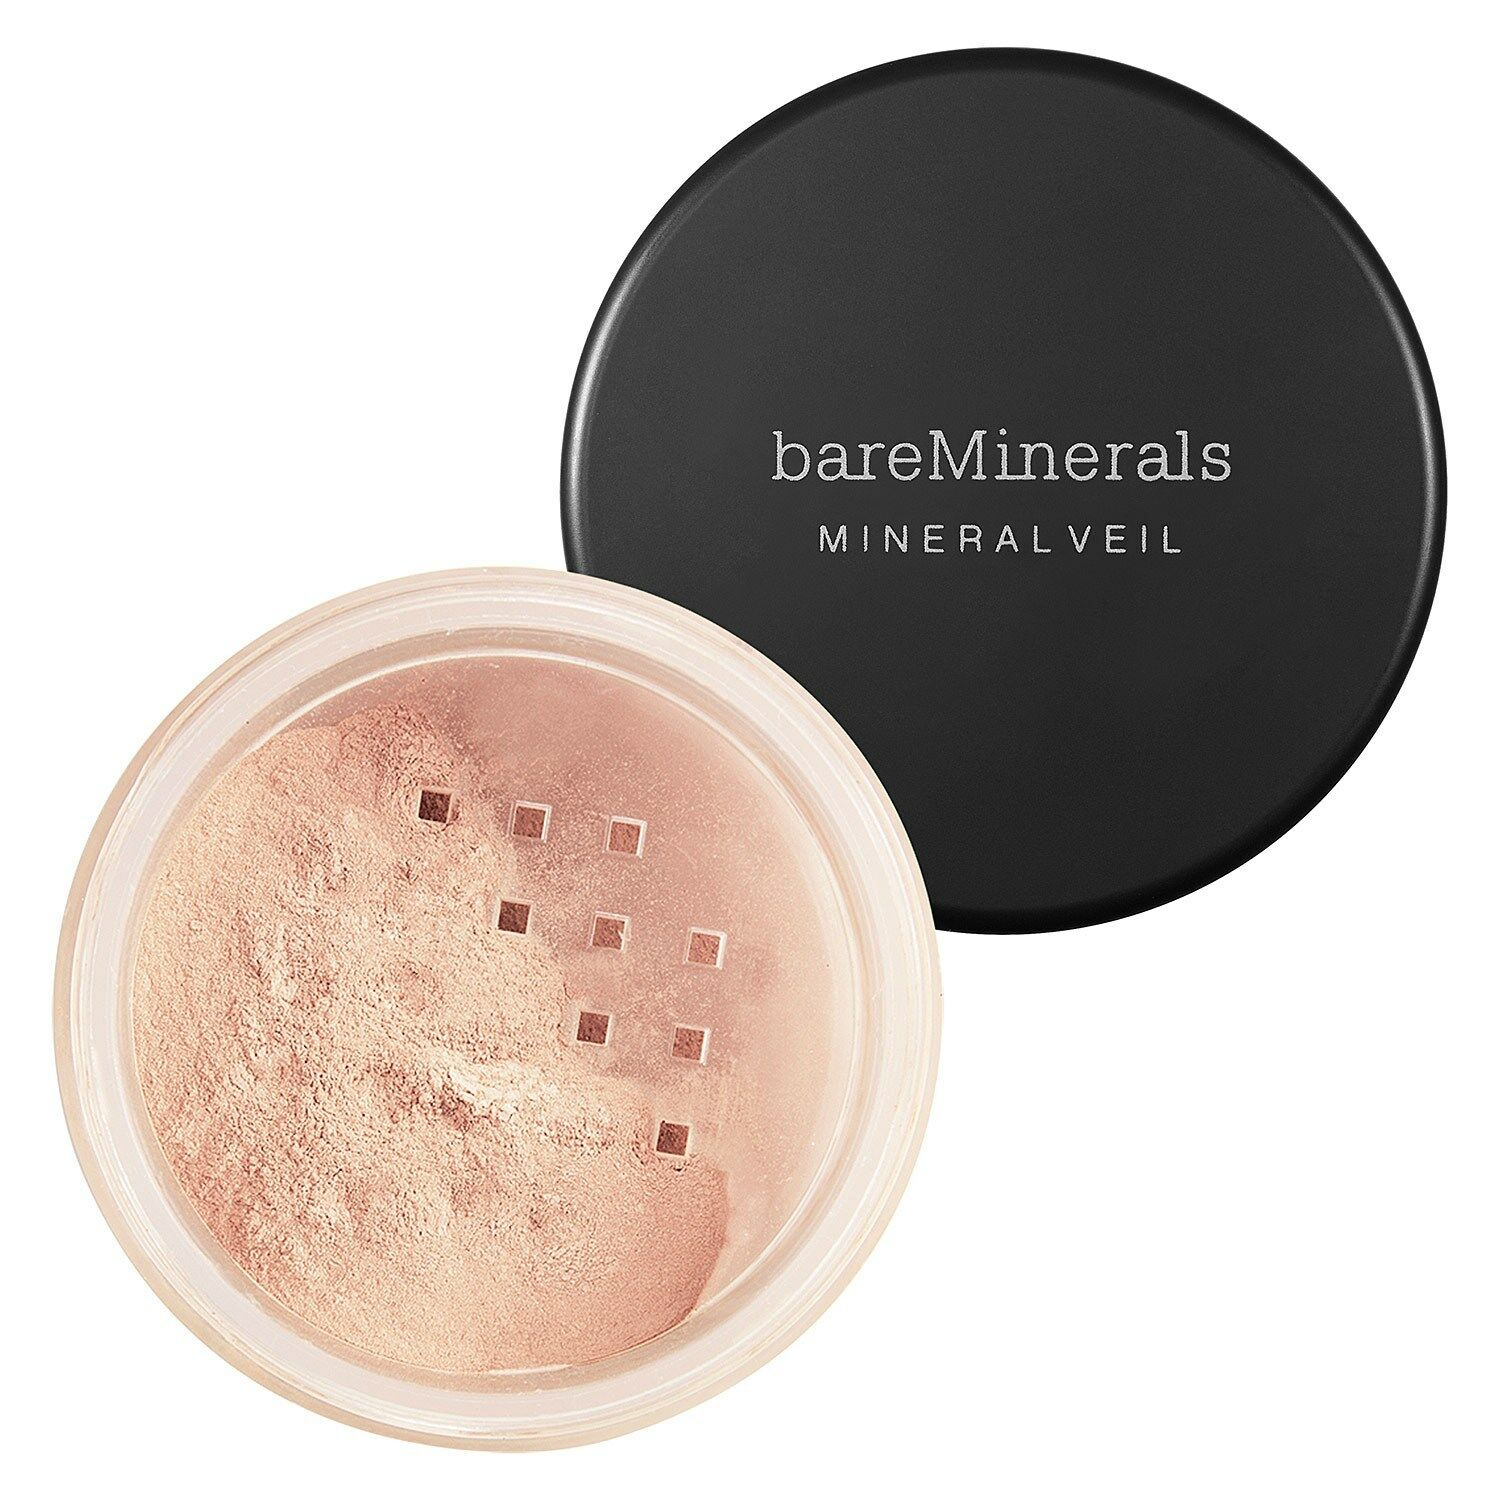 BareMinerals Original Mineral Veil SPF 25 Finishing Powder 6